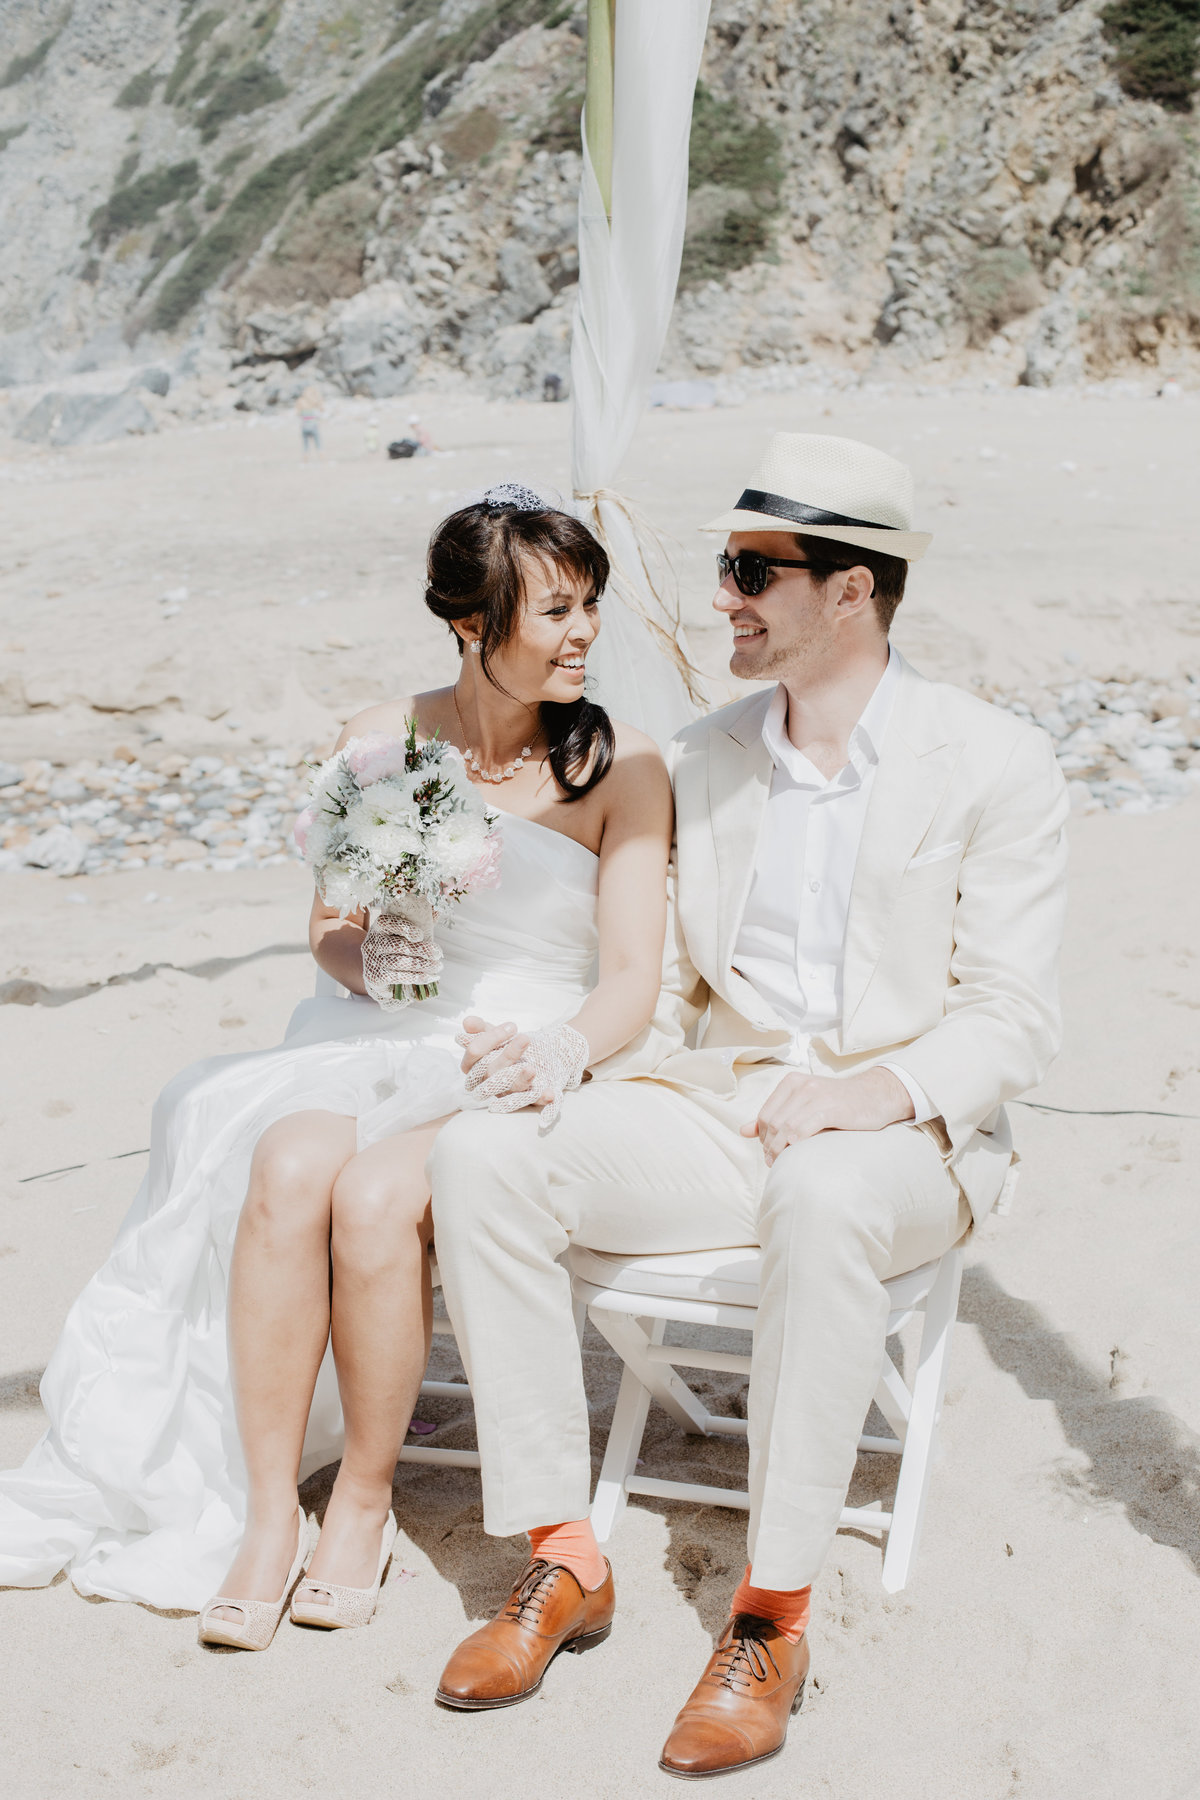 4ValerieVisschedijk - Destinationwedding - Portugal-4